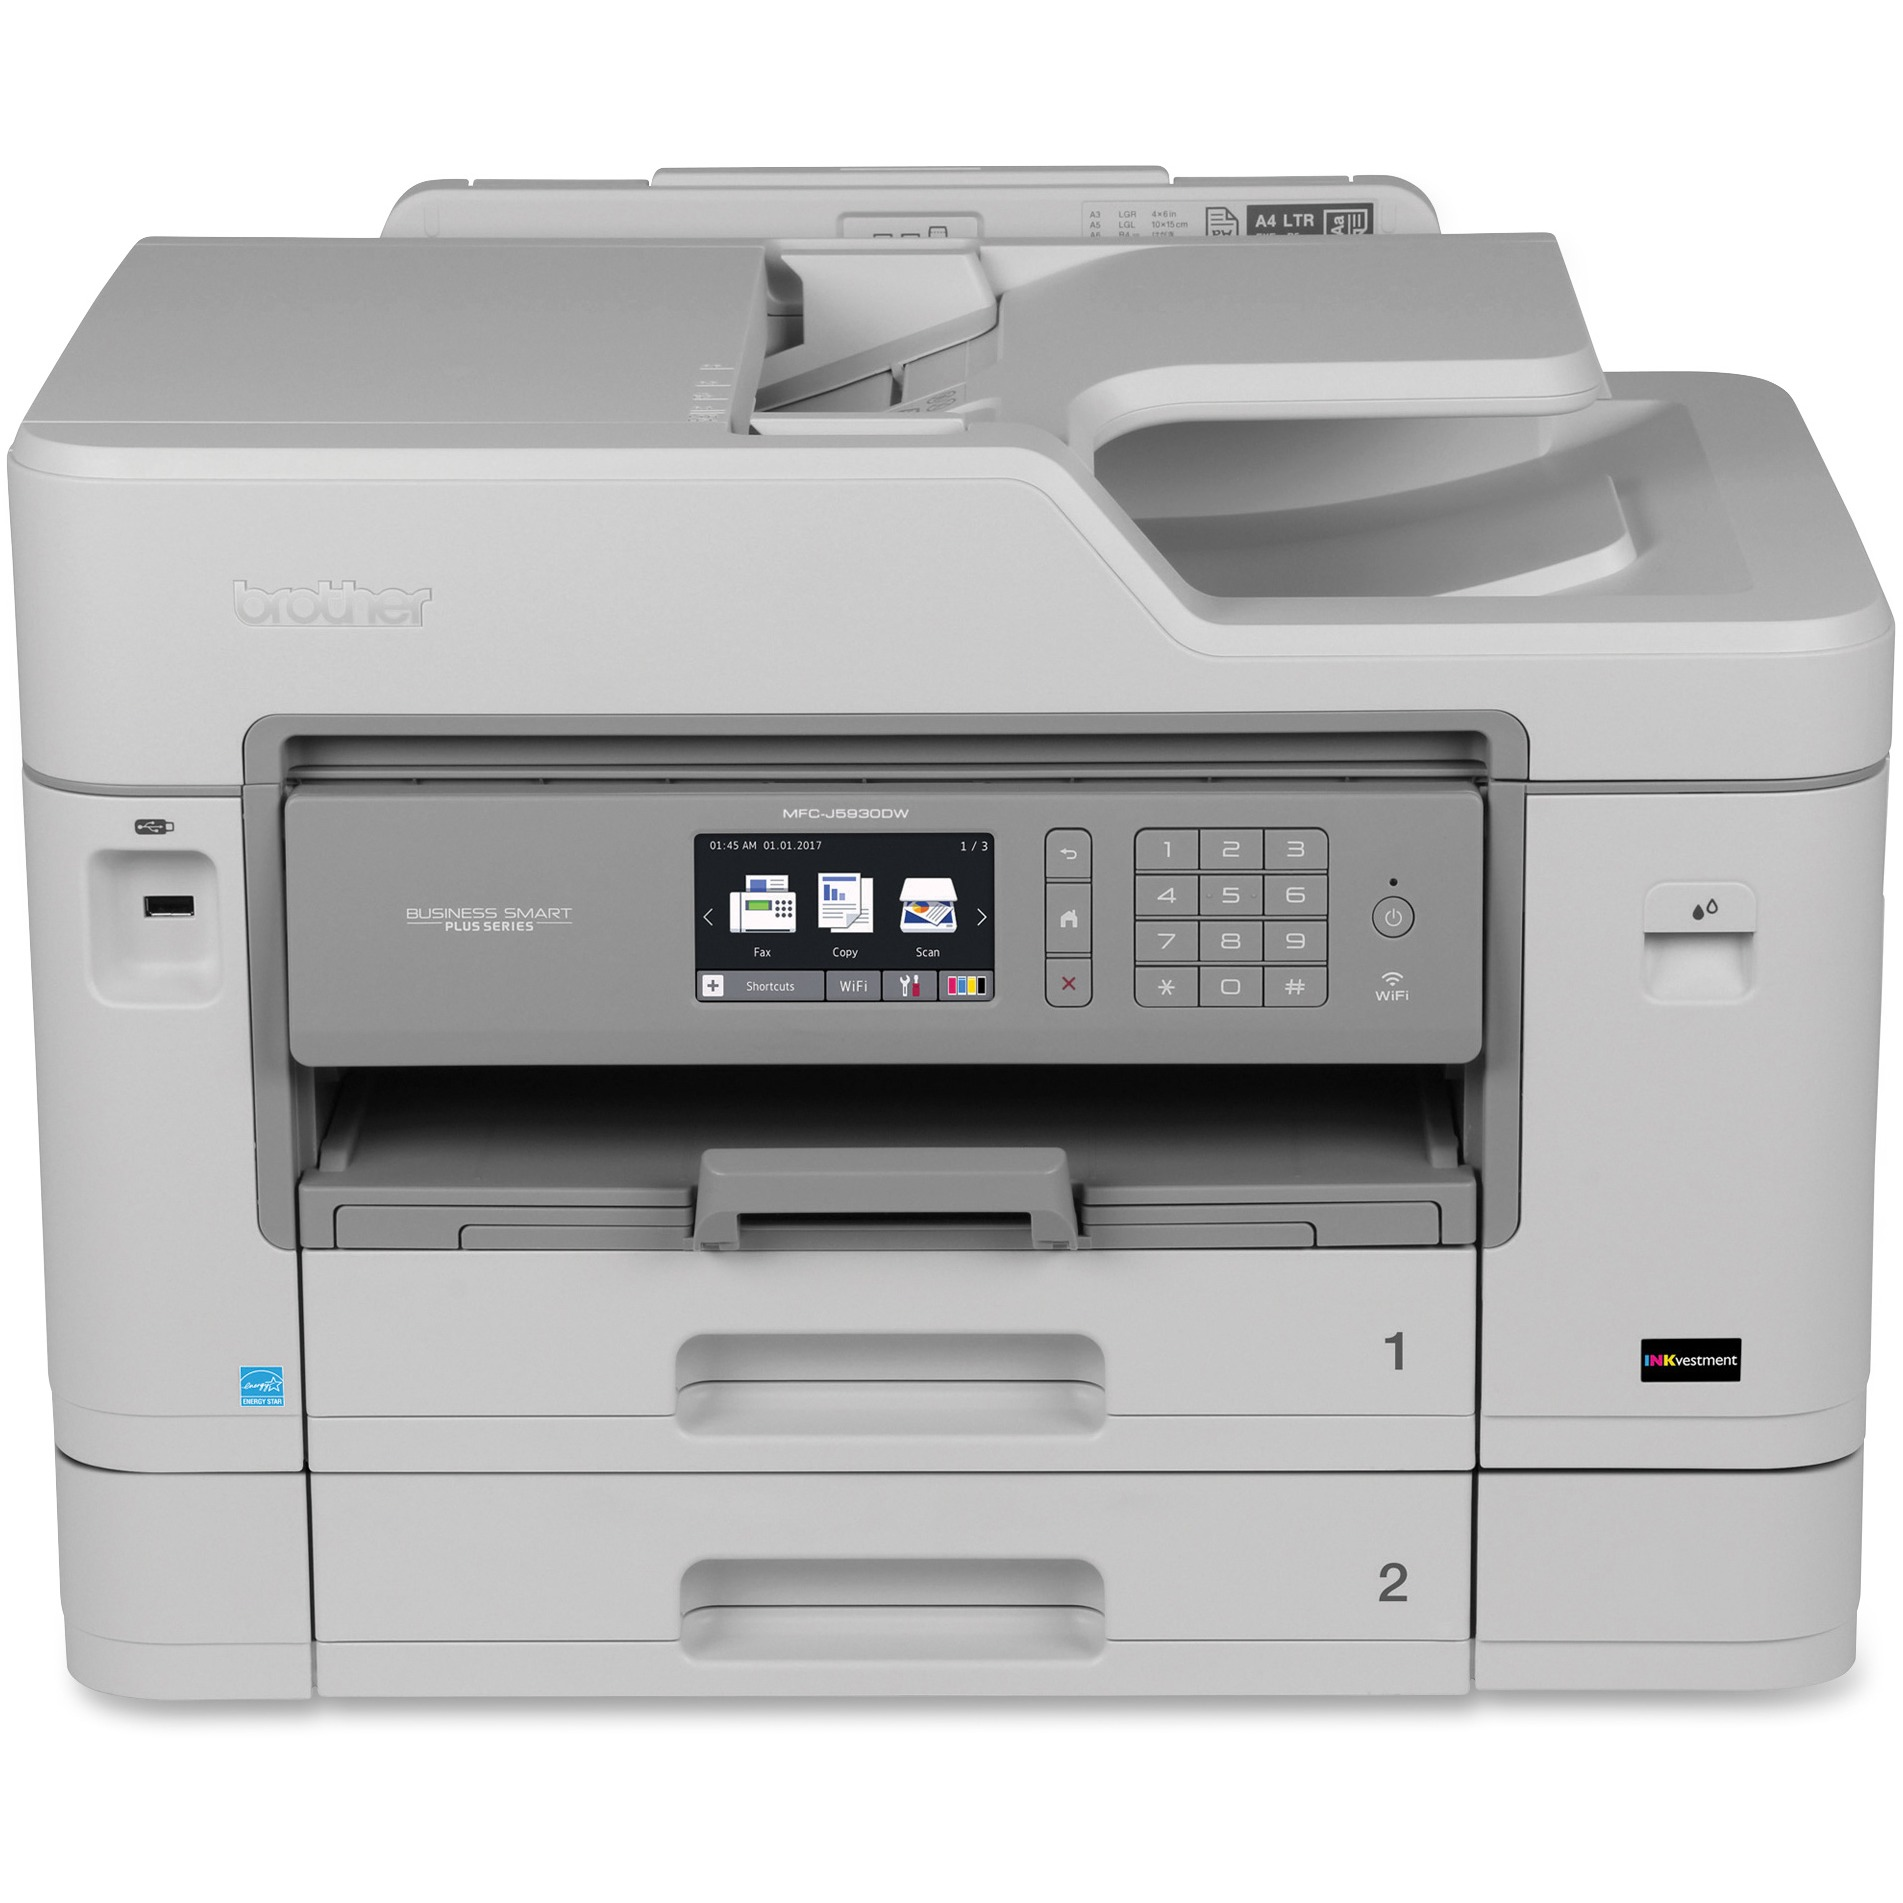 Brother Business Smart Plus MFC-J5930DW Color Inkjet All-in-One Printer Series by Brother